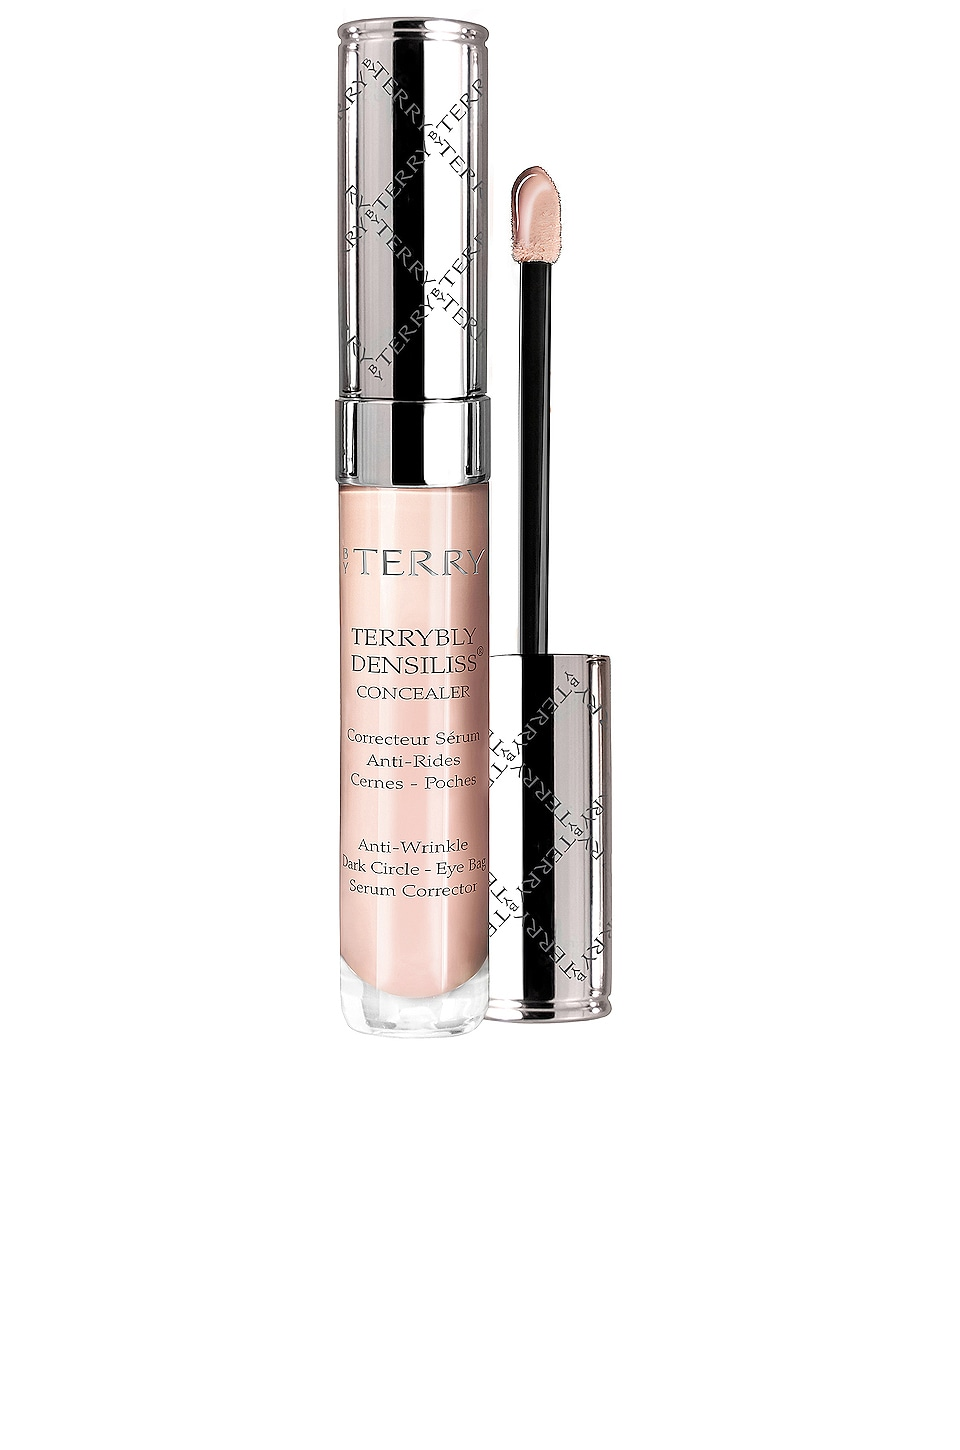 By Terry Terrybly Densiliss Concealer in Medium Peach